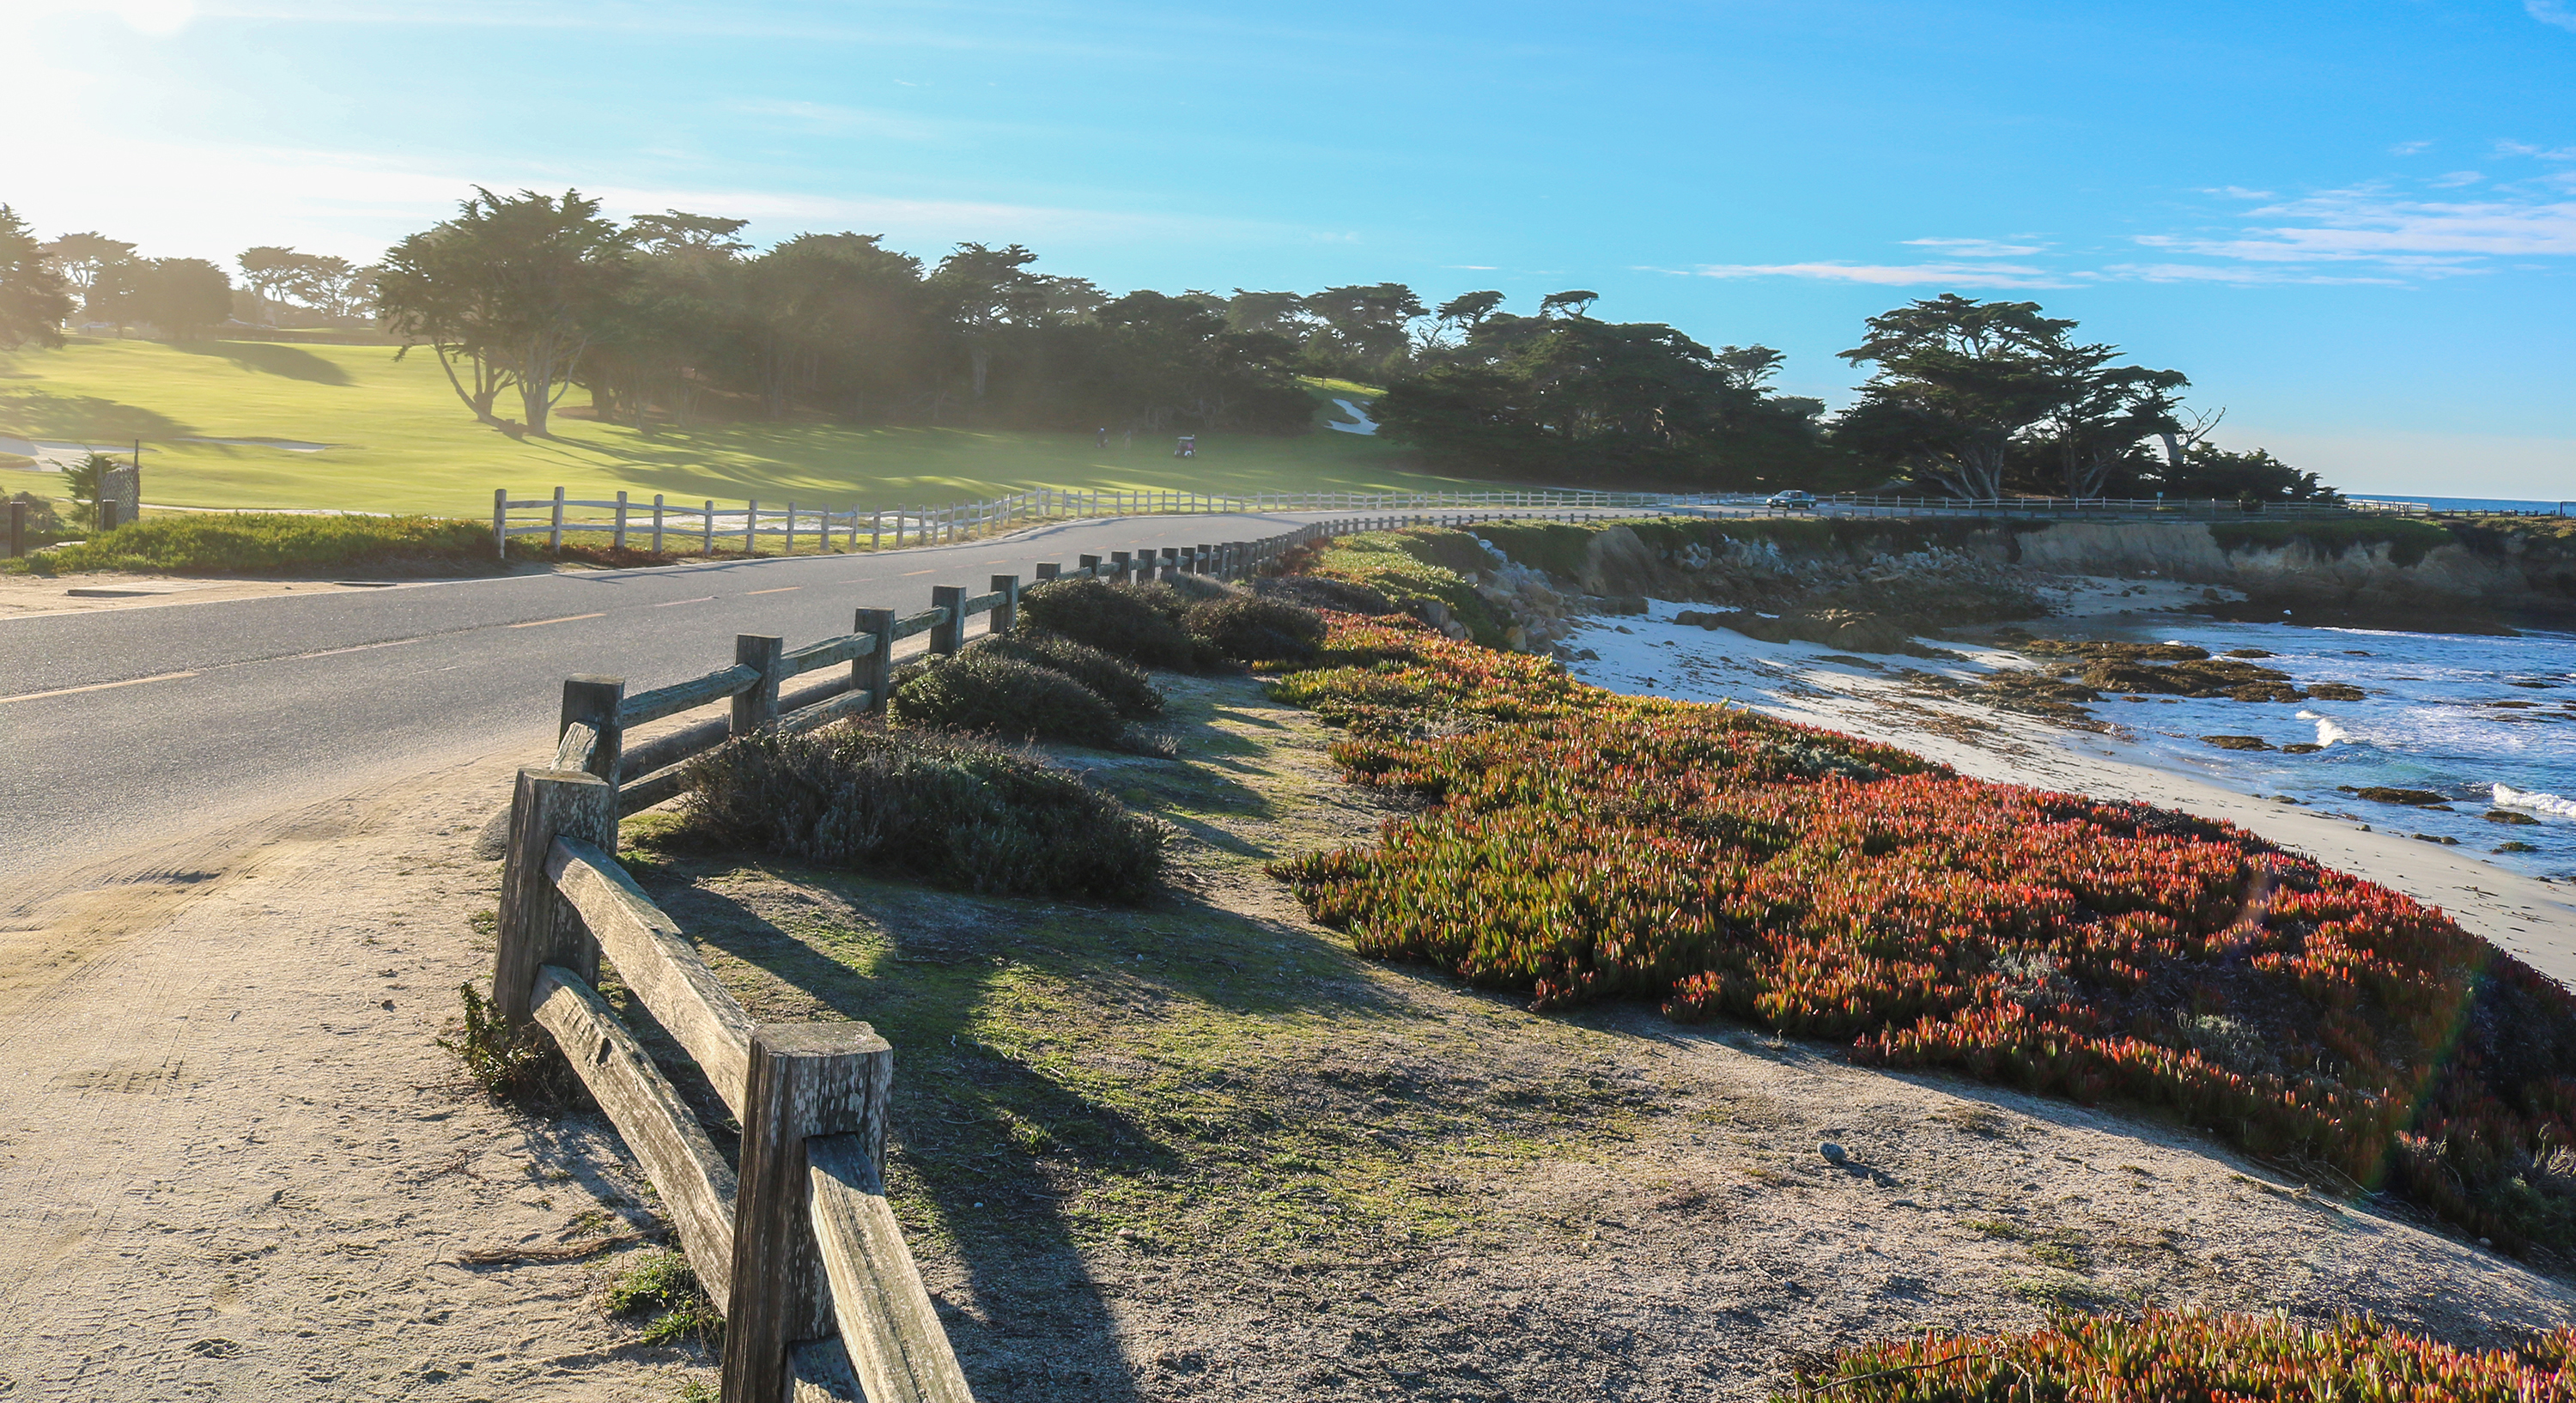 The Vineyard Vines Half Marathon At Pebble Beach